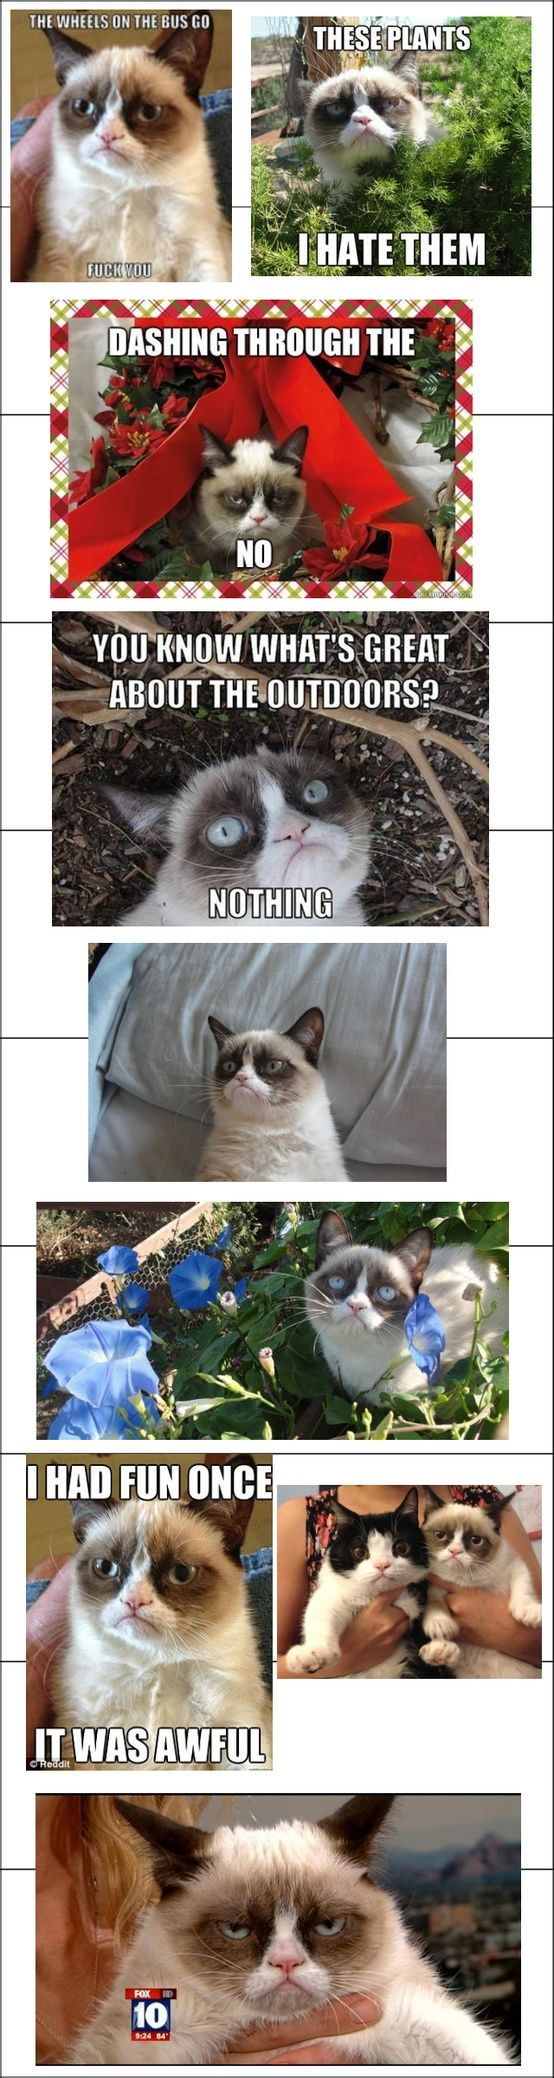 #grumpycat these grumpy cat memes make me laugh